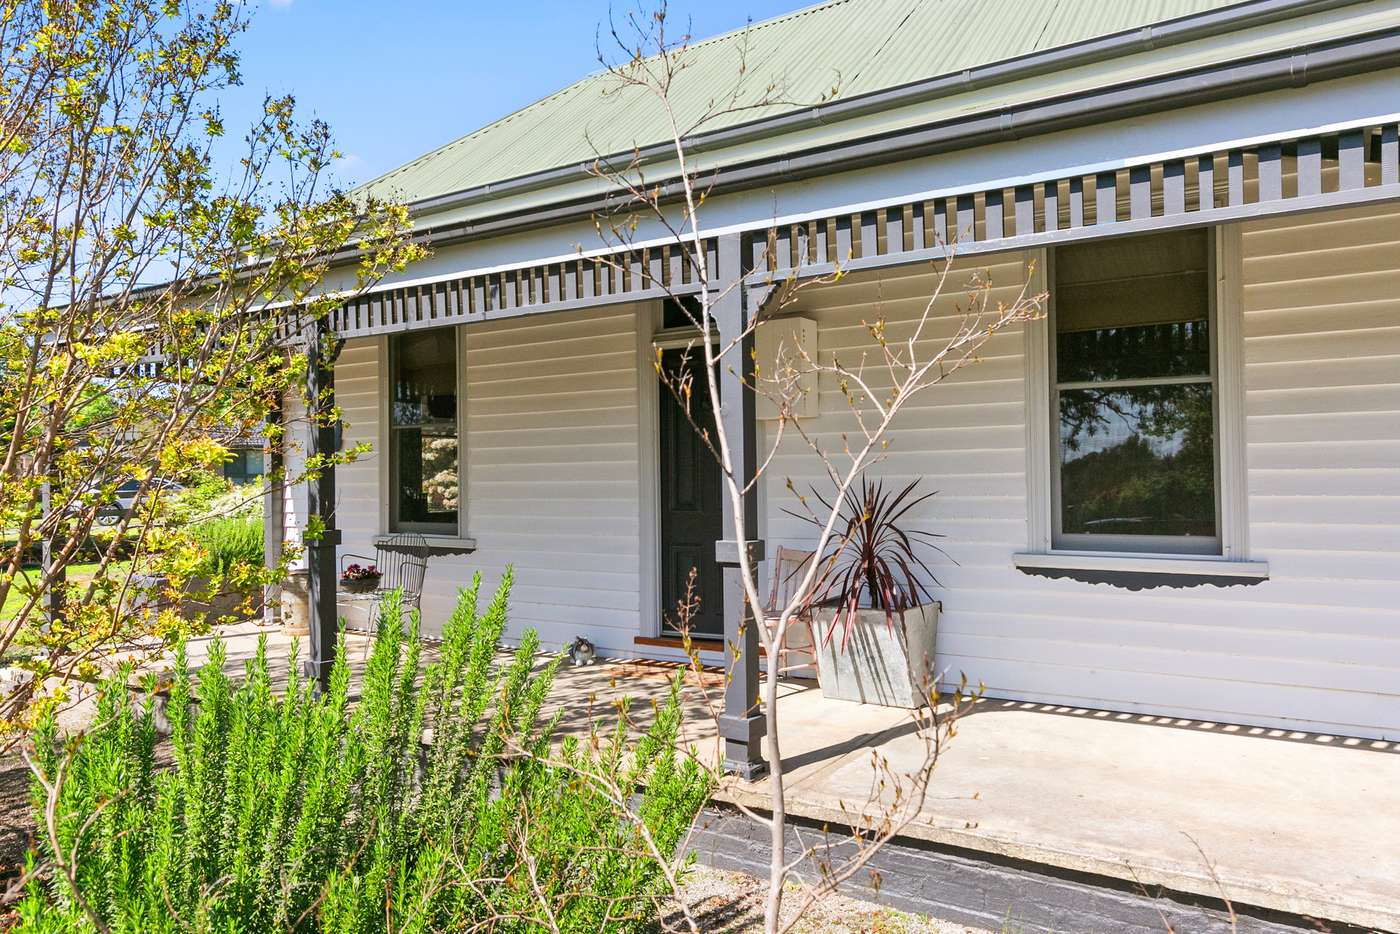 Main view of Homely house listing, 11 Melbourne Road, Yea VIC 3717